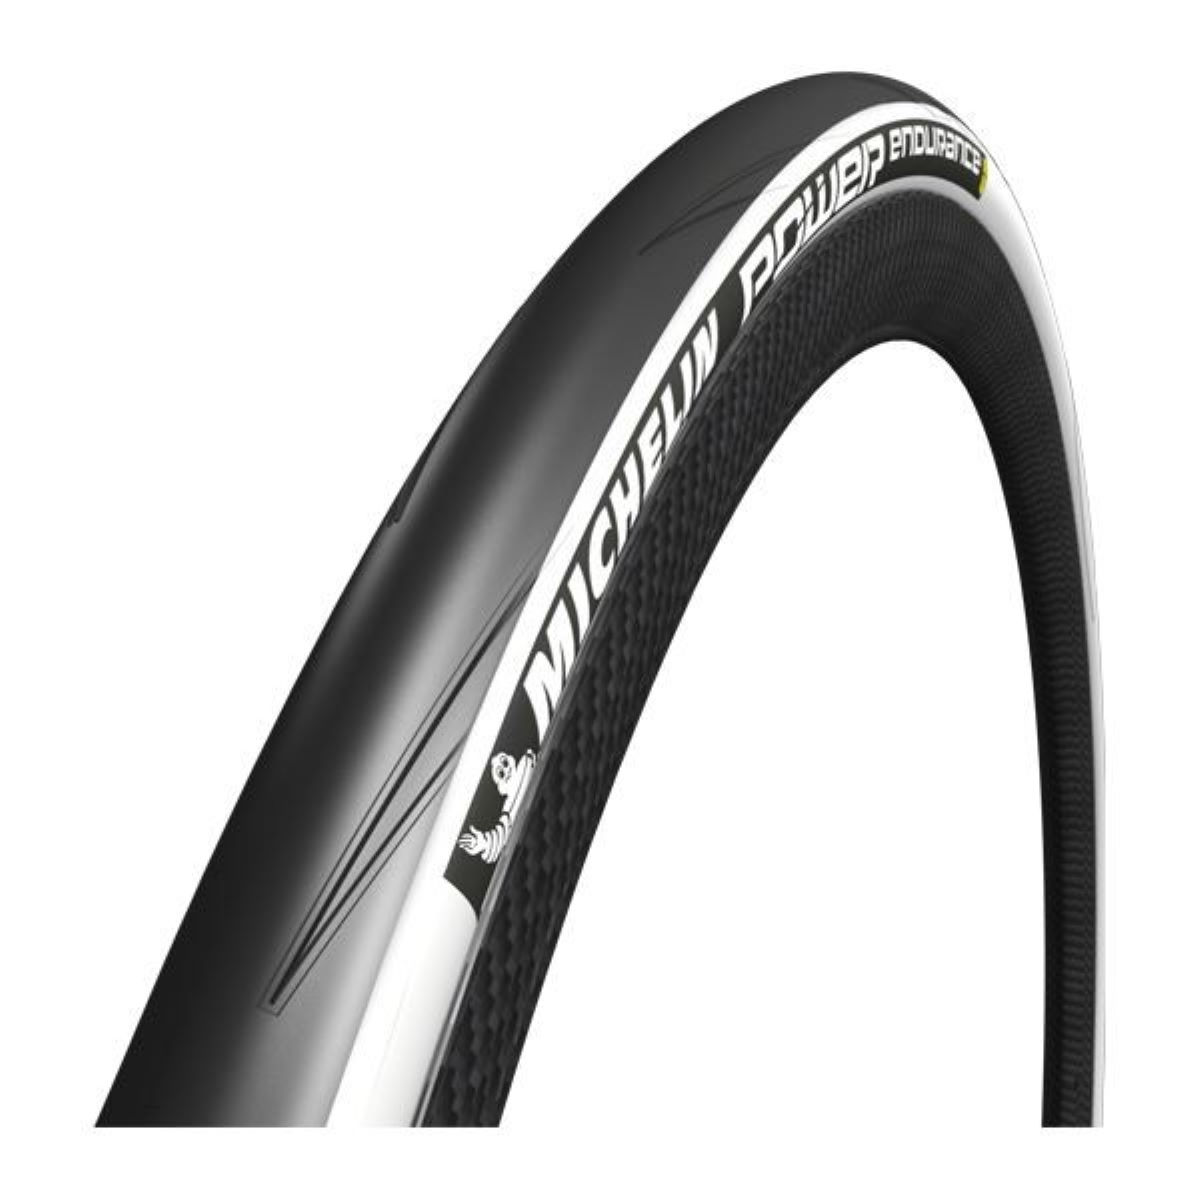 Pneu souple de route Michelin Power Endurance (700 x 23 c) - Blanc